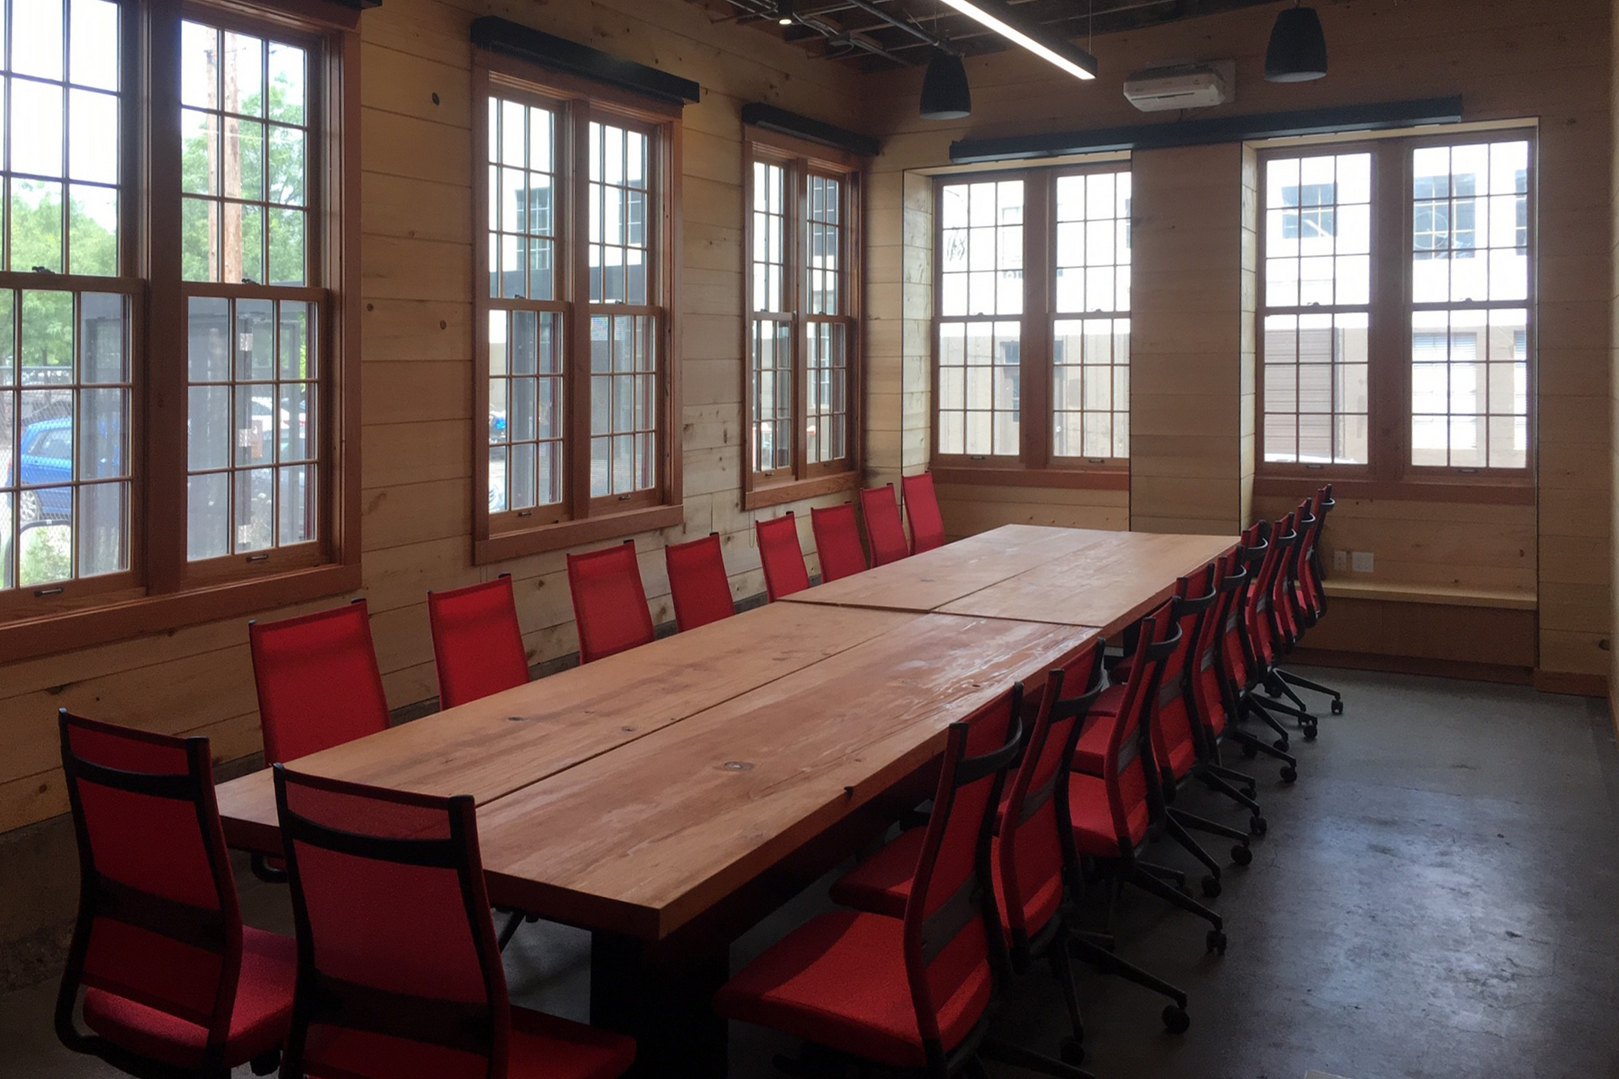 Board Room with board table and chairs